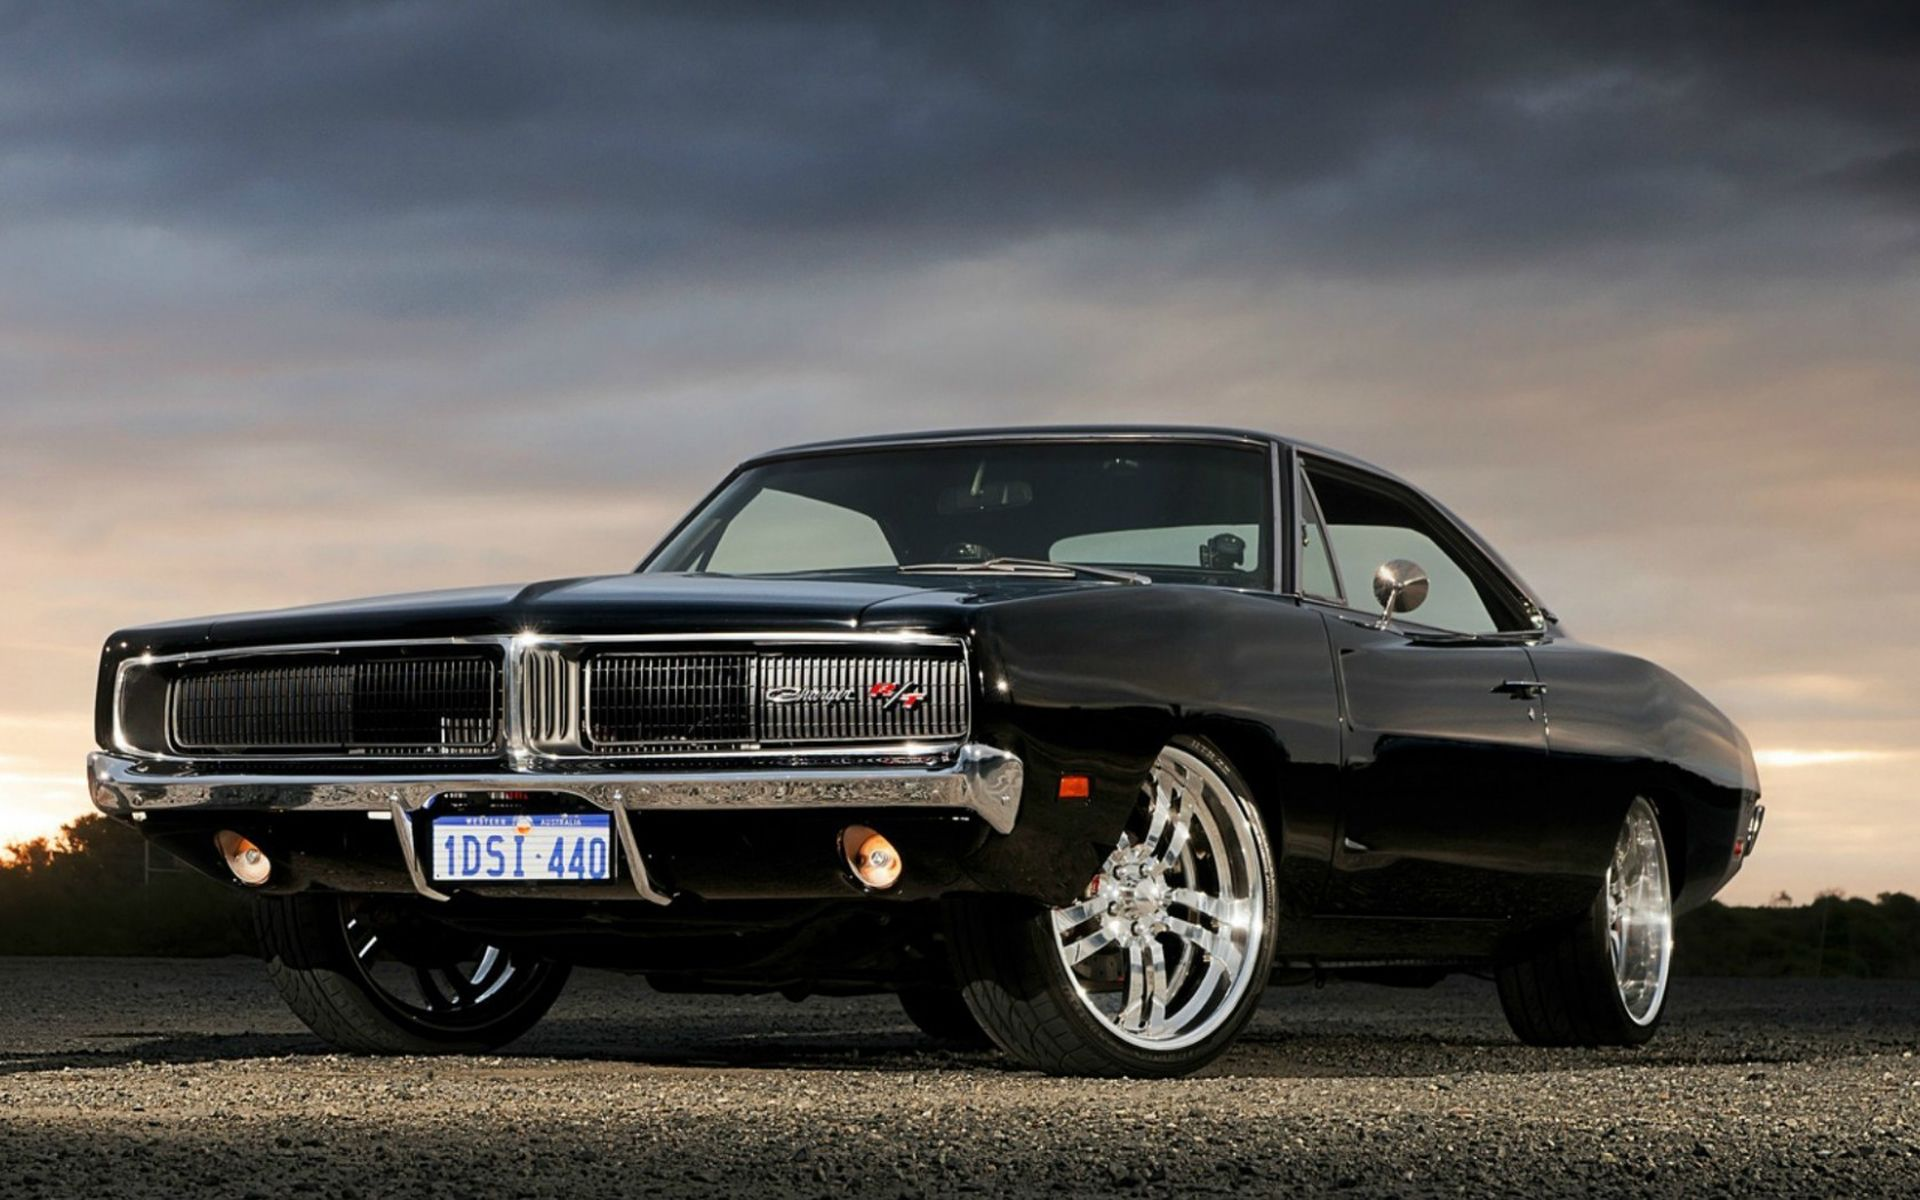 68 dodge charger wallpaper 5 dodge charger srt hd wallpapers backgrounds wallpaper abyss [ 1920 x 1200 Pixel ]